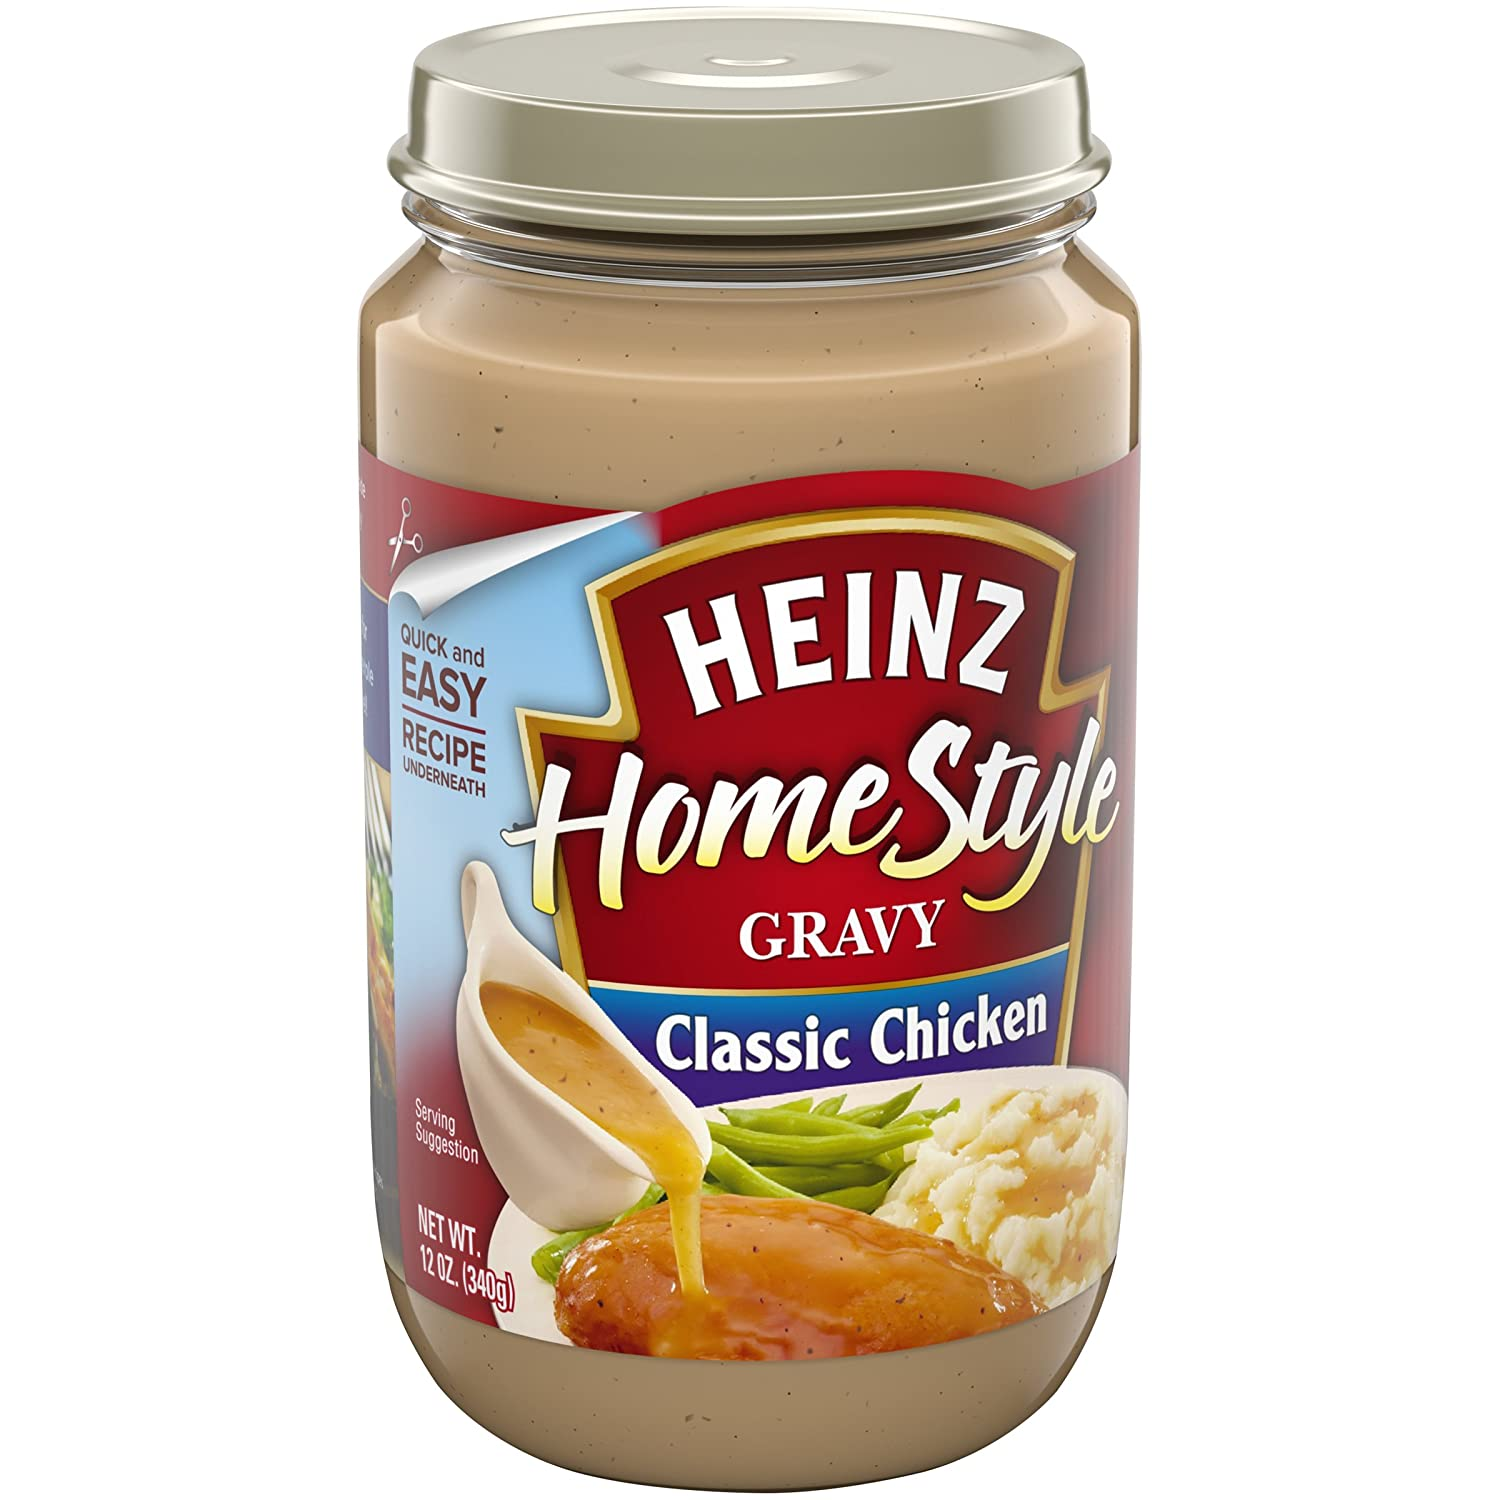 Heinz Homestyle Classic Chicken Gravy (12 oz Jars, Pack of 12)